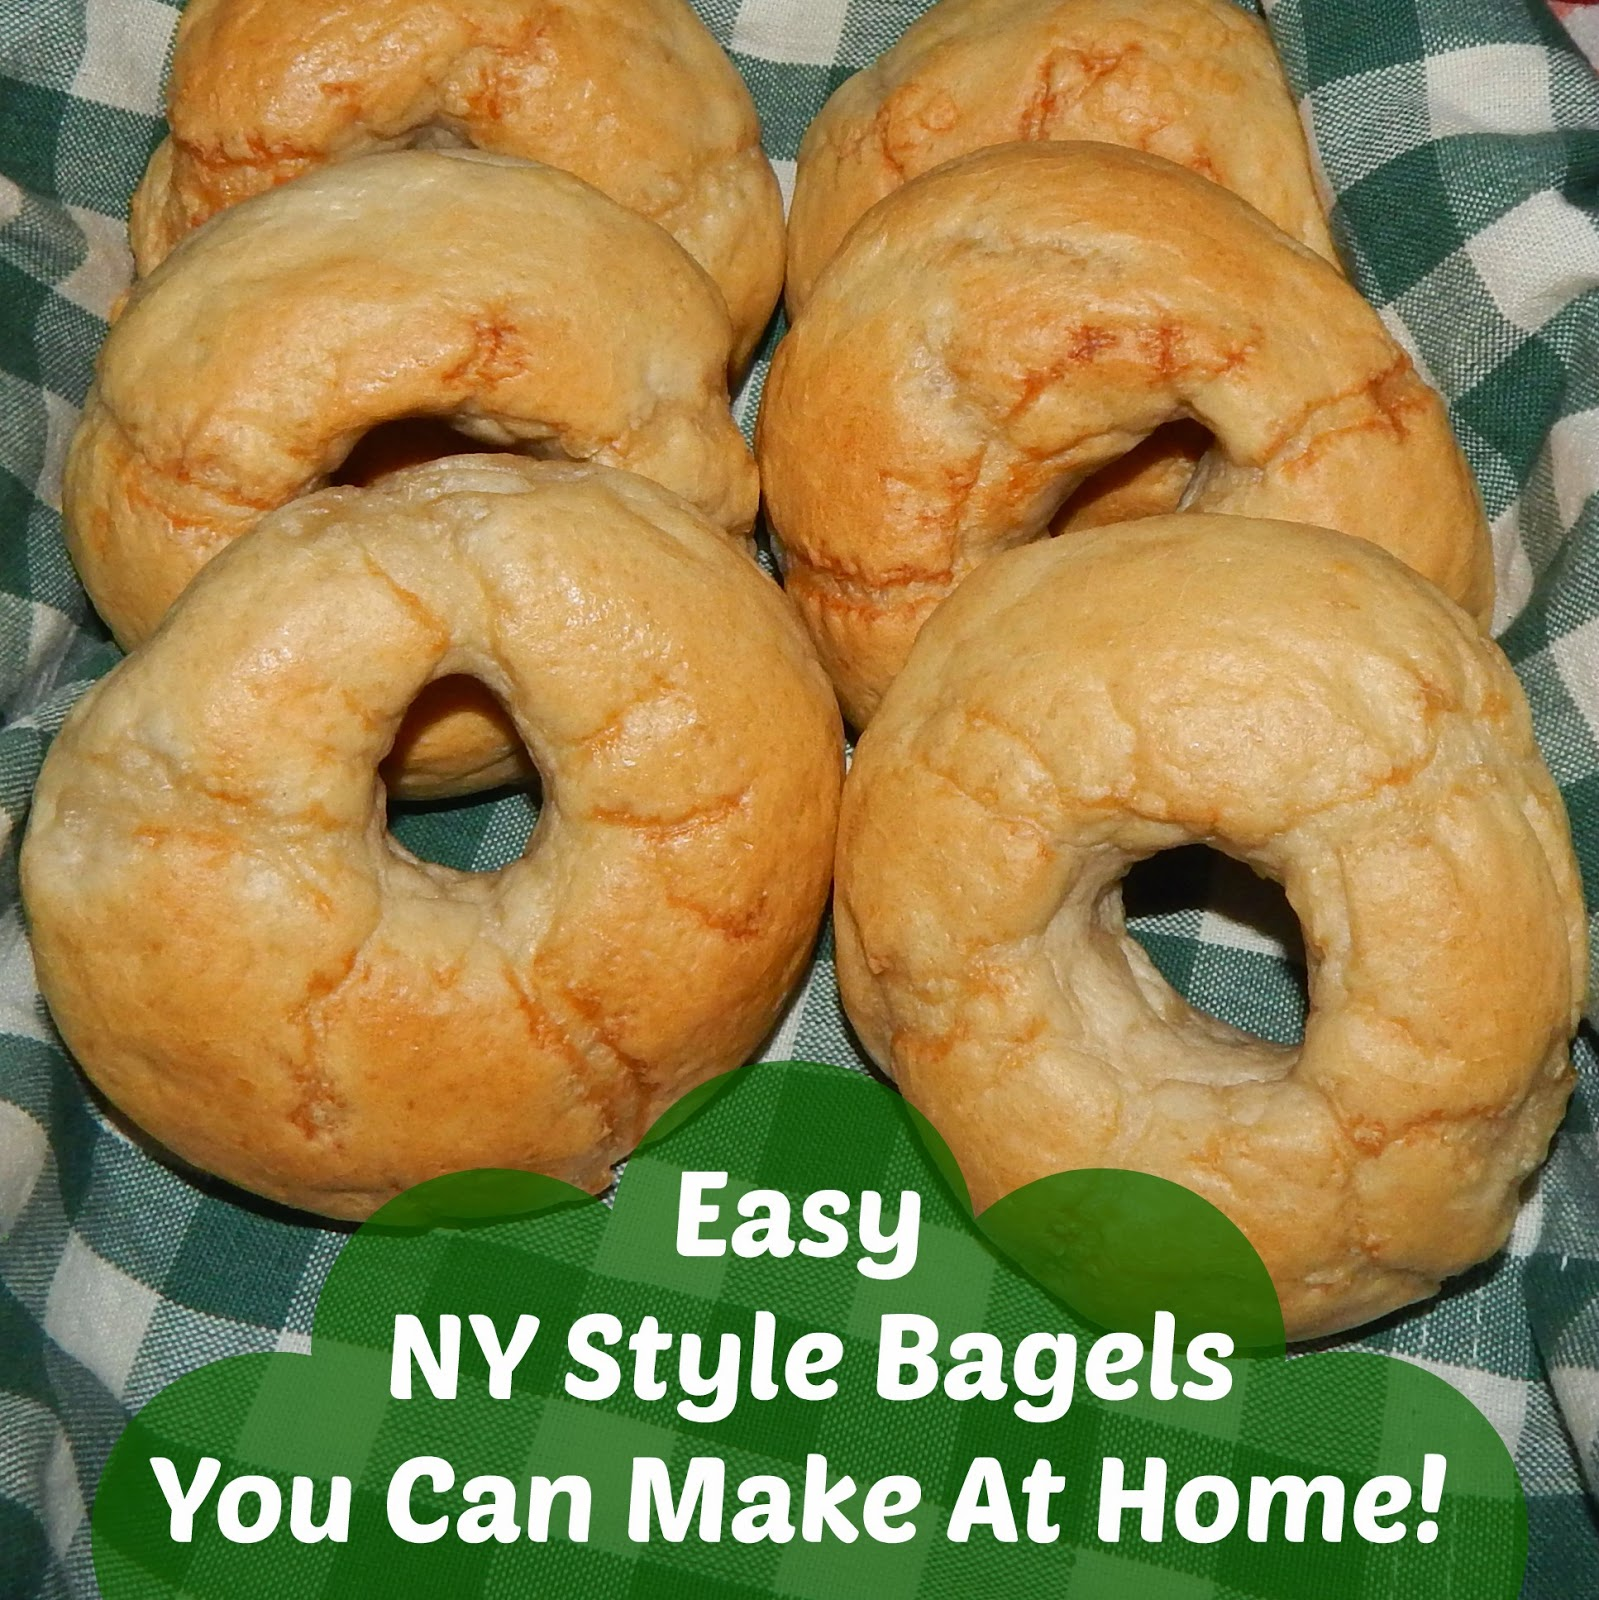 Easy NY Style Bagels You Can Make At Home